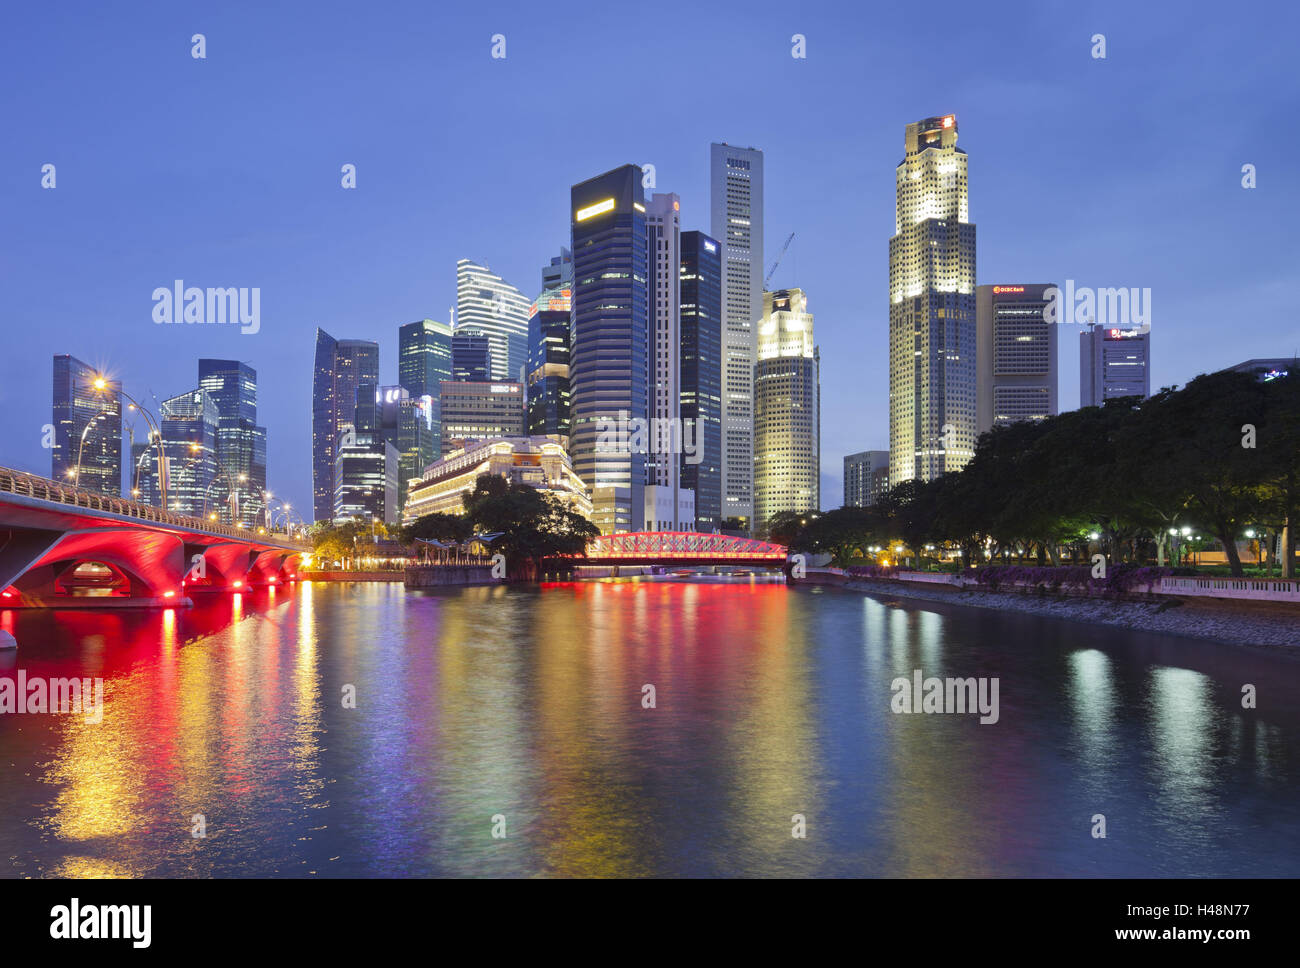 Anderson Bridge, Financial District, Marina Bay, Singapore, - Stock Image